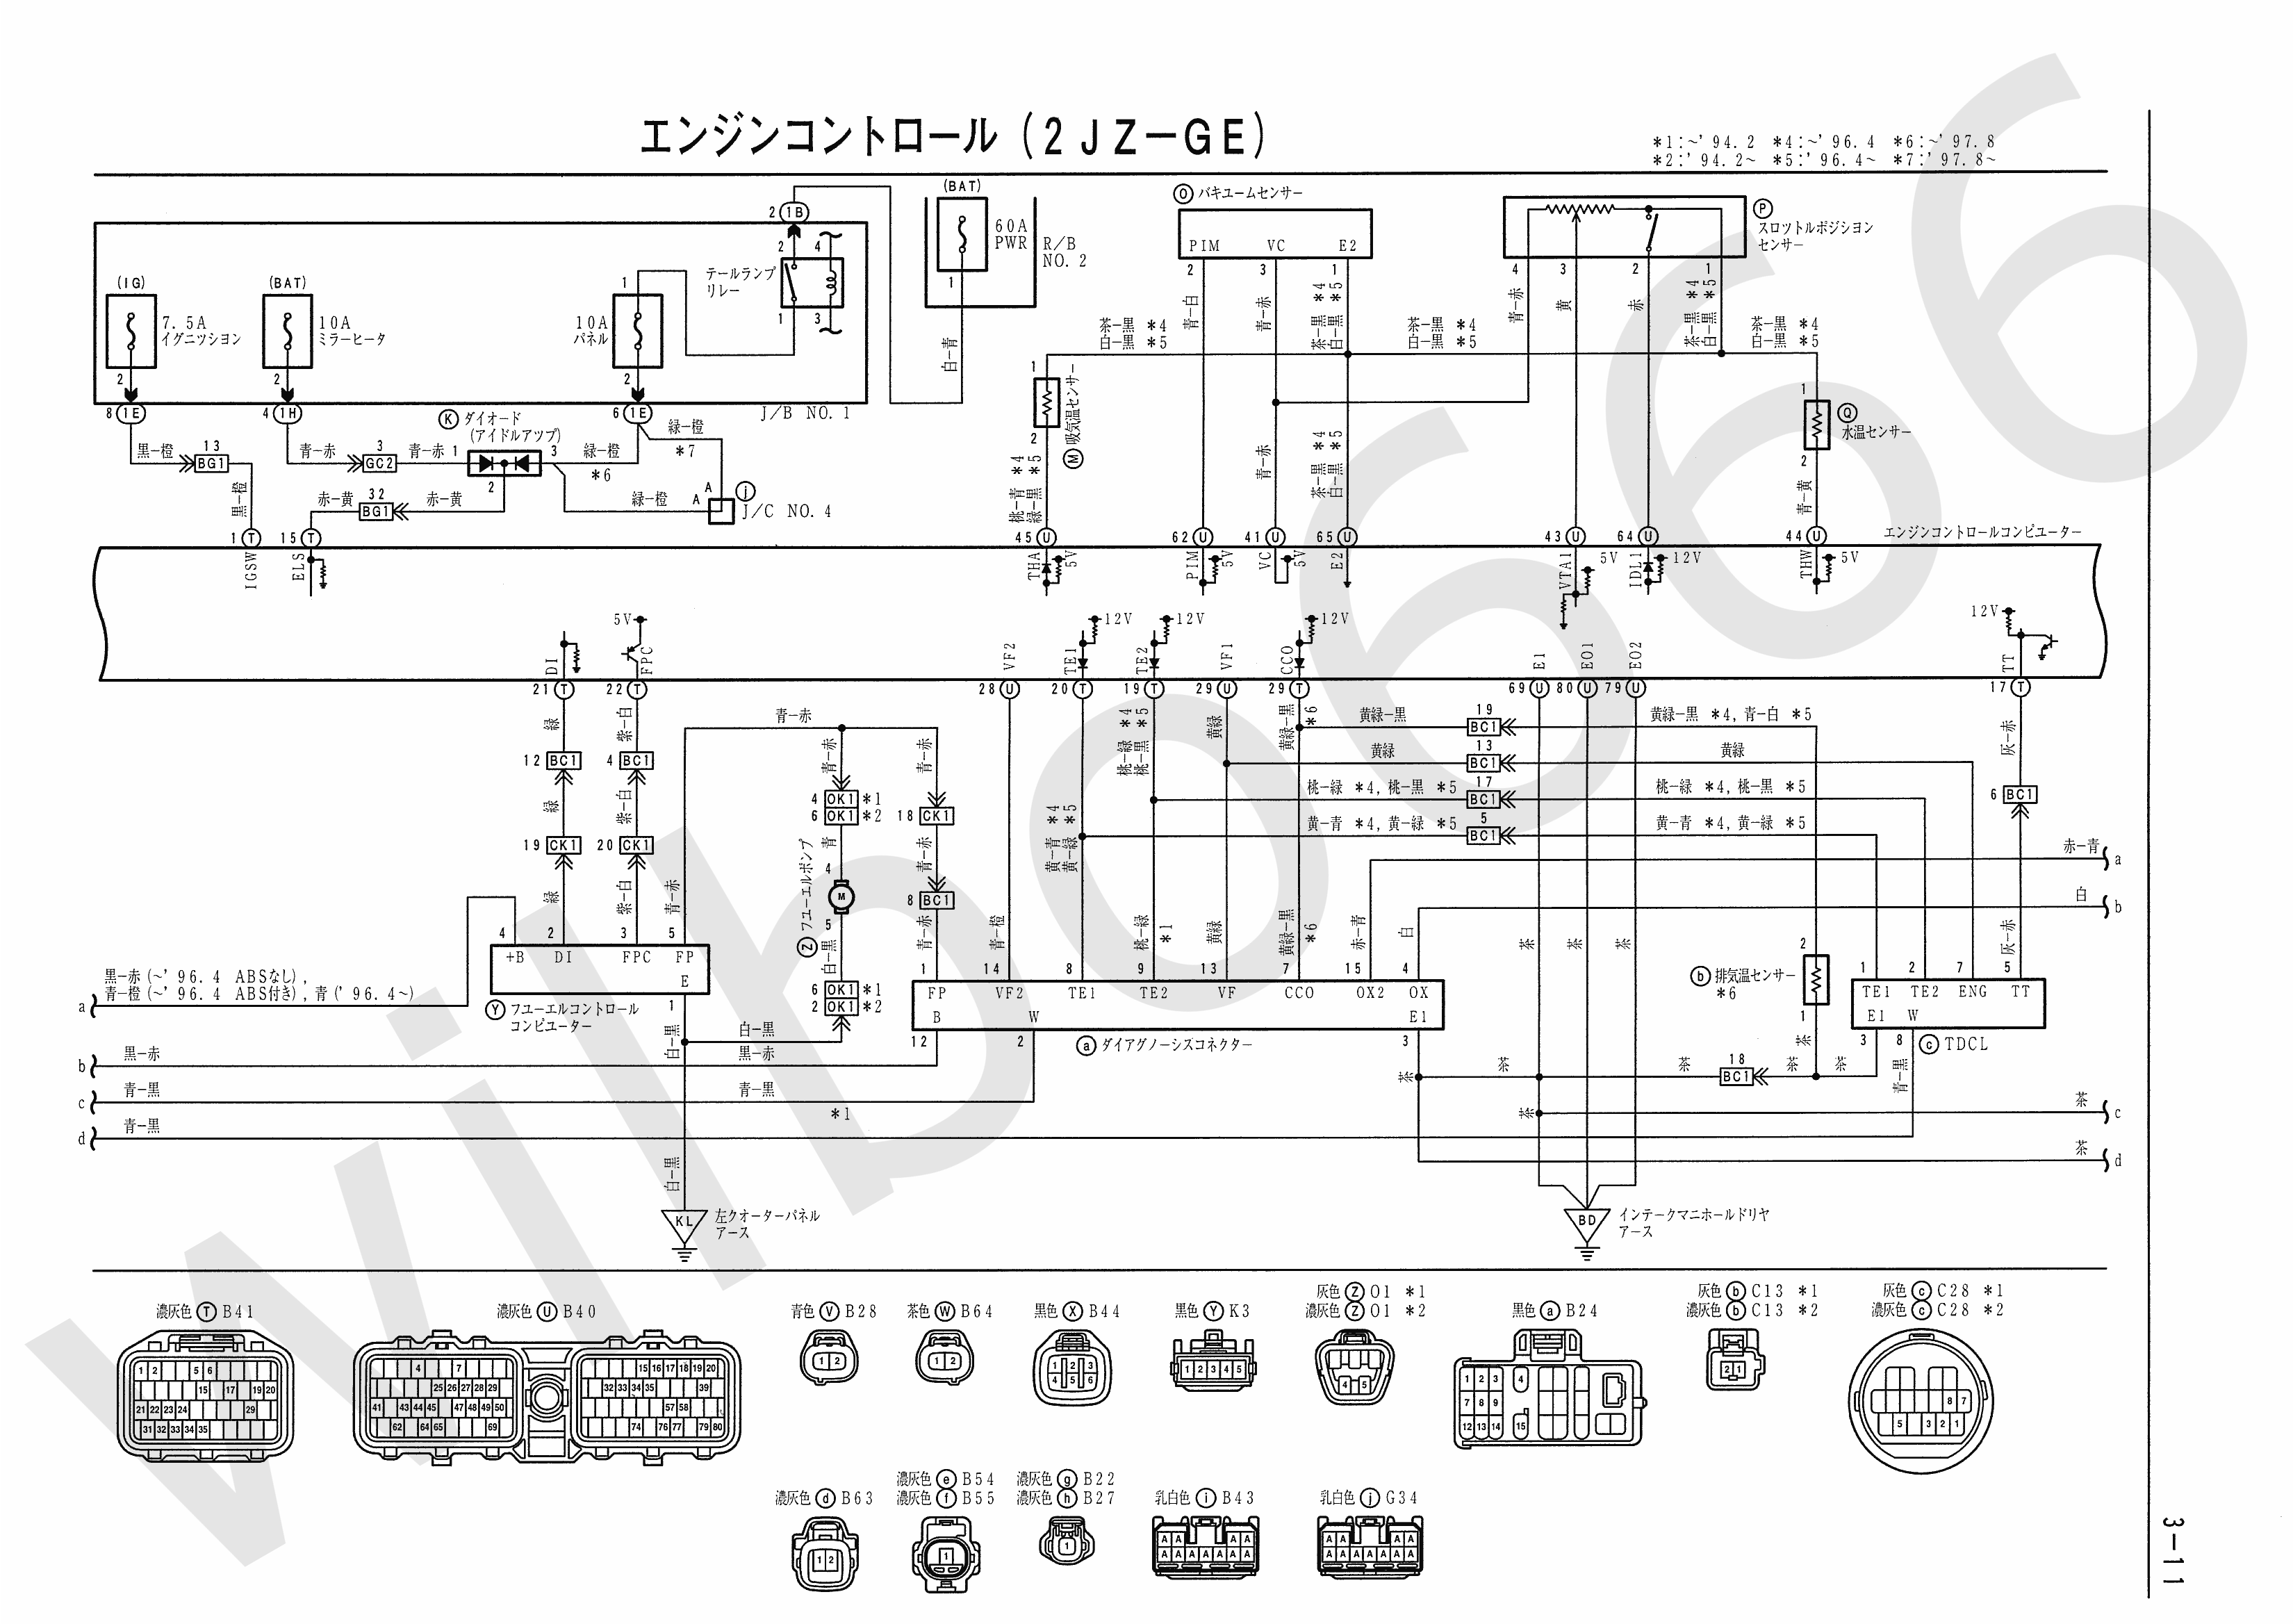 JZA80 Electrical Wiring Diagram 6742505 3 11 wilbo666 2jz ge jza80 supra engine wiring ge wiring diagrams at panicattacktreatment.co